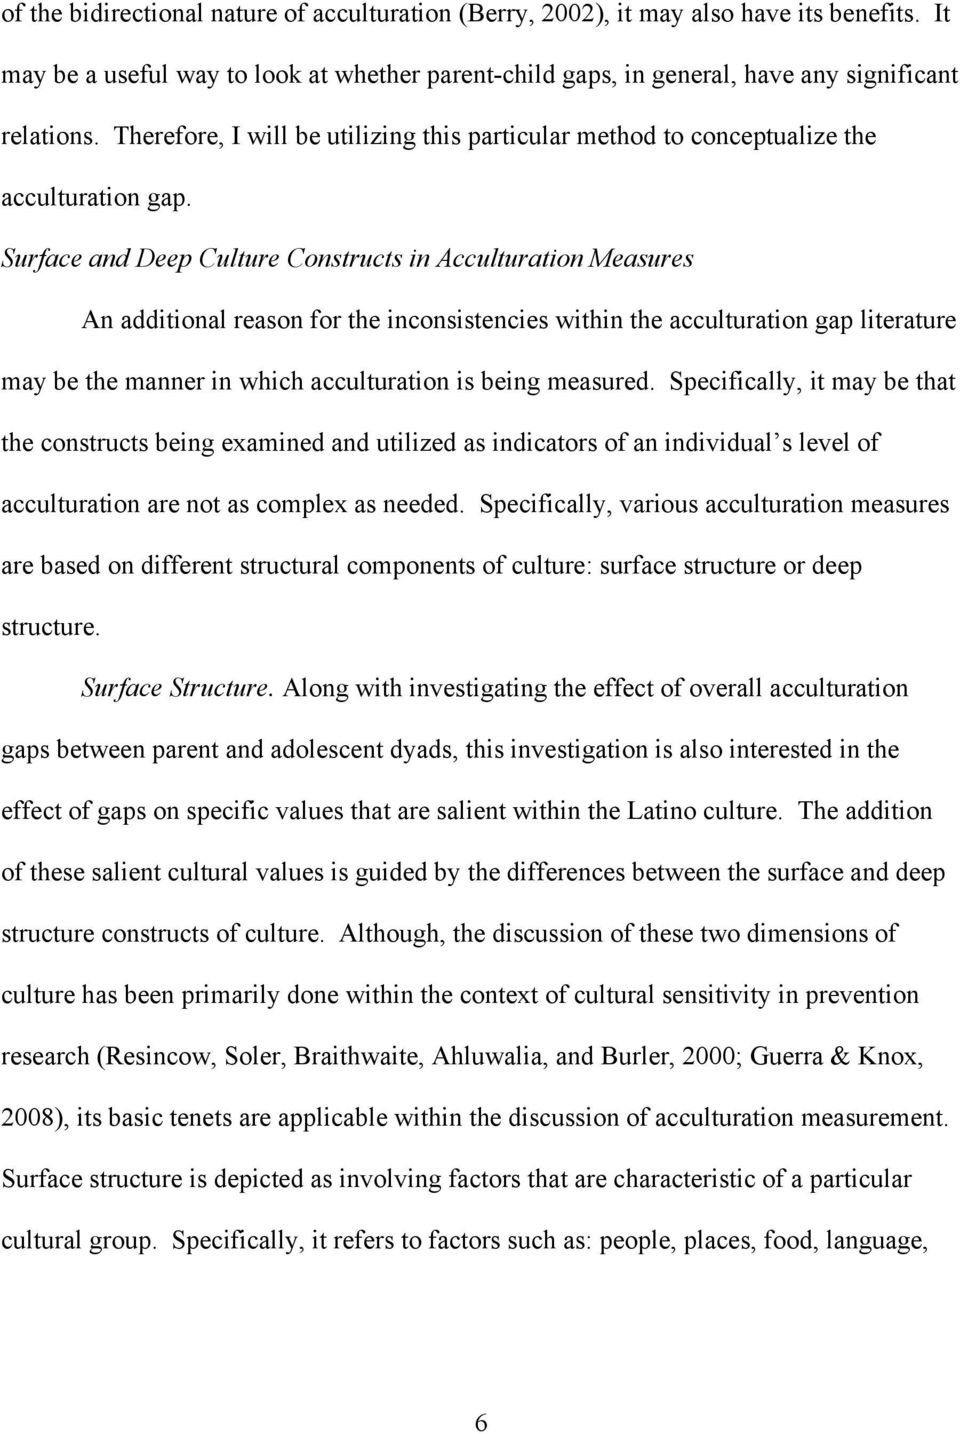 Surface and Deep Culture Constructs in Acculturation Measures An additional reason for the inconsistencies within the acculturation gap literature may be the manner in which acculturation is being